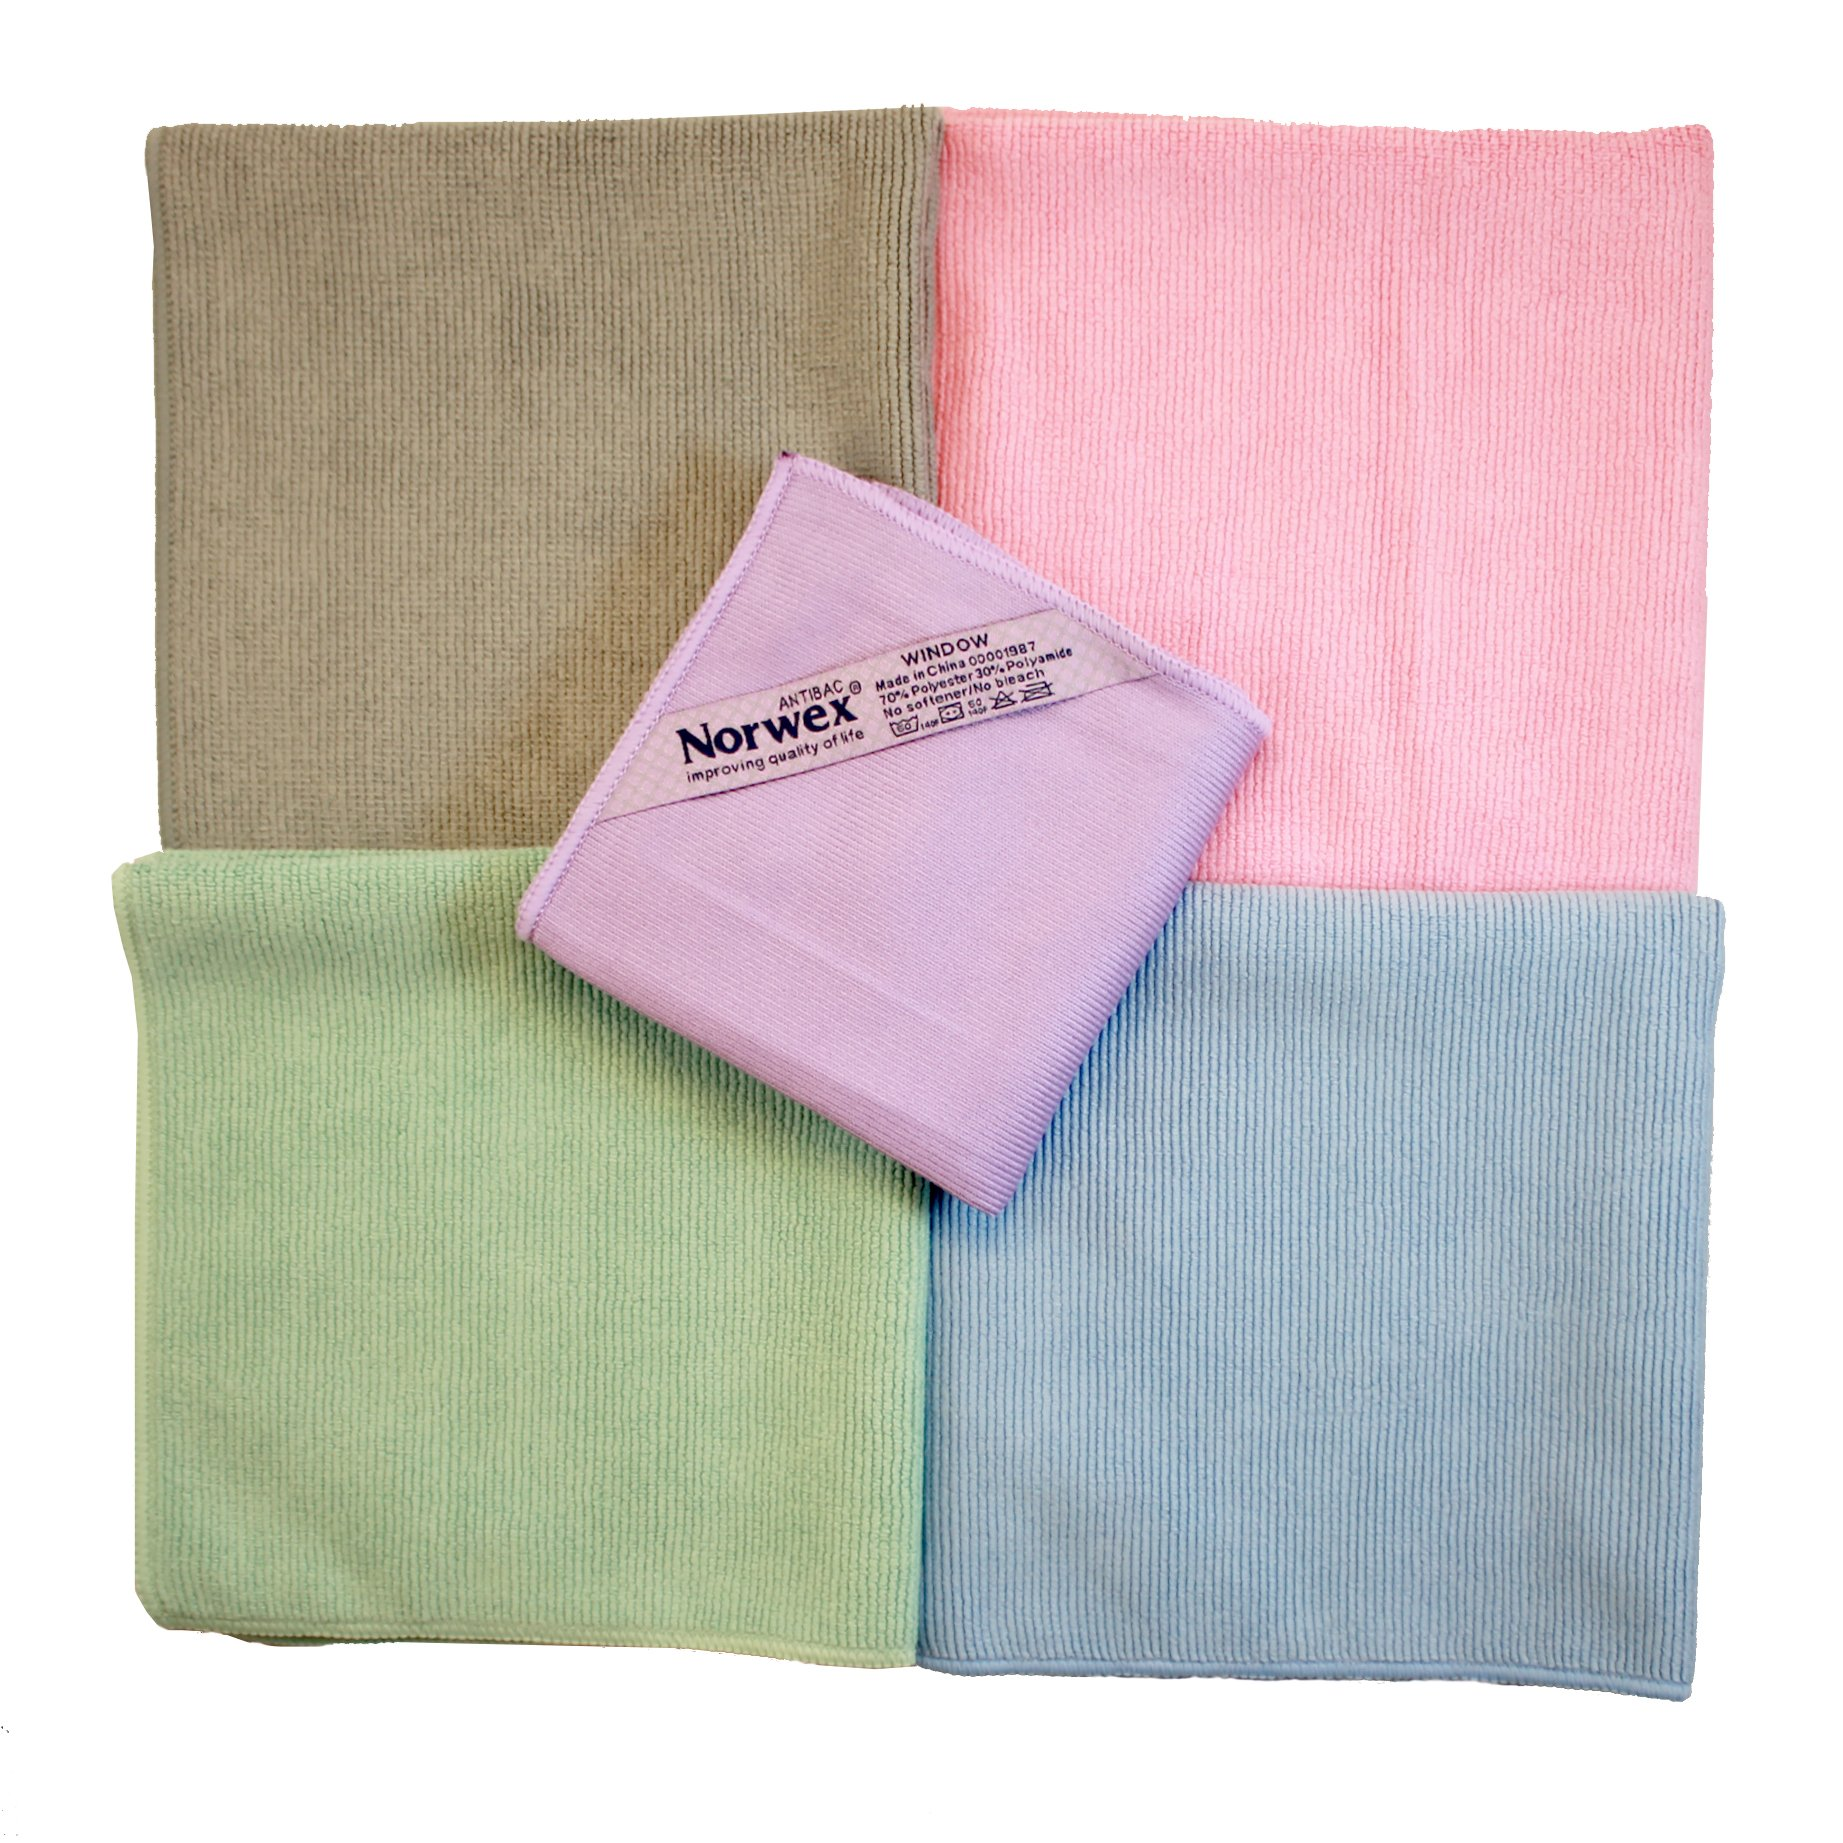 Norwex Microfiber Rainbow Package Plus with 4 Enviro Cloths & 1 Window Polishing Cloth